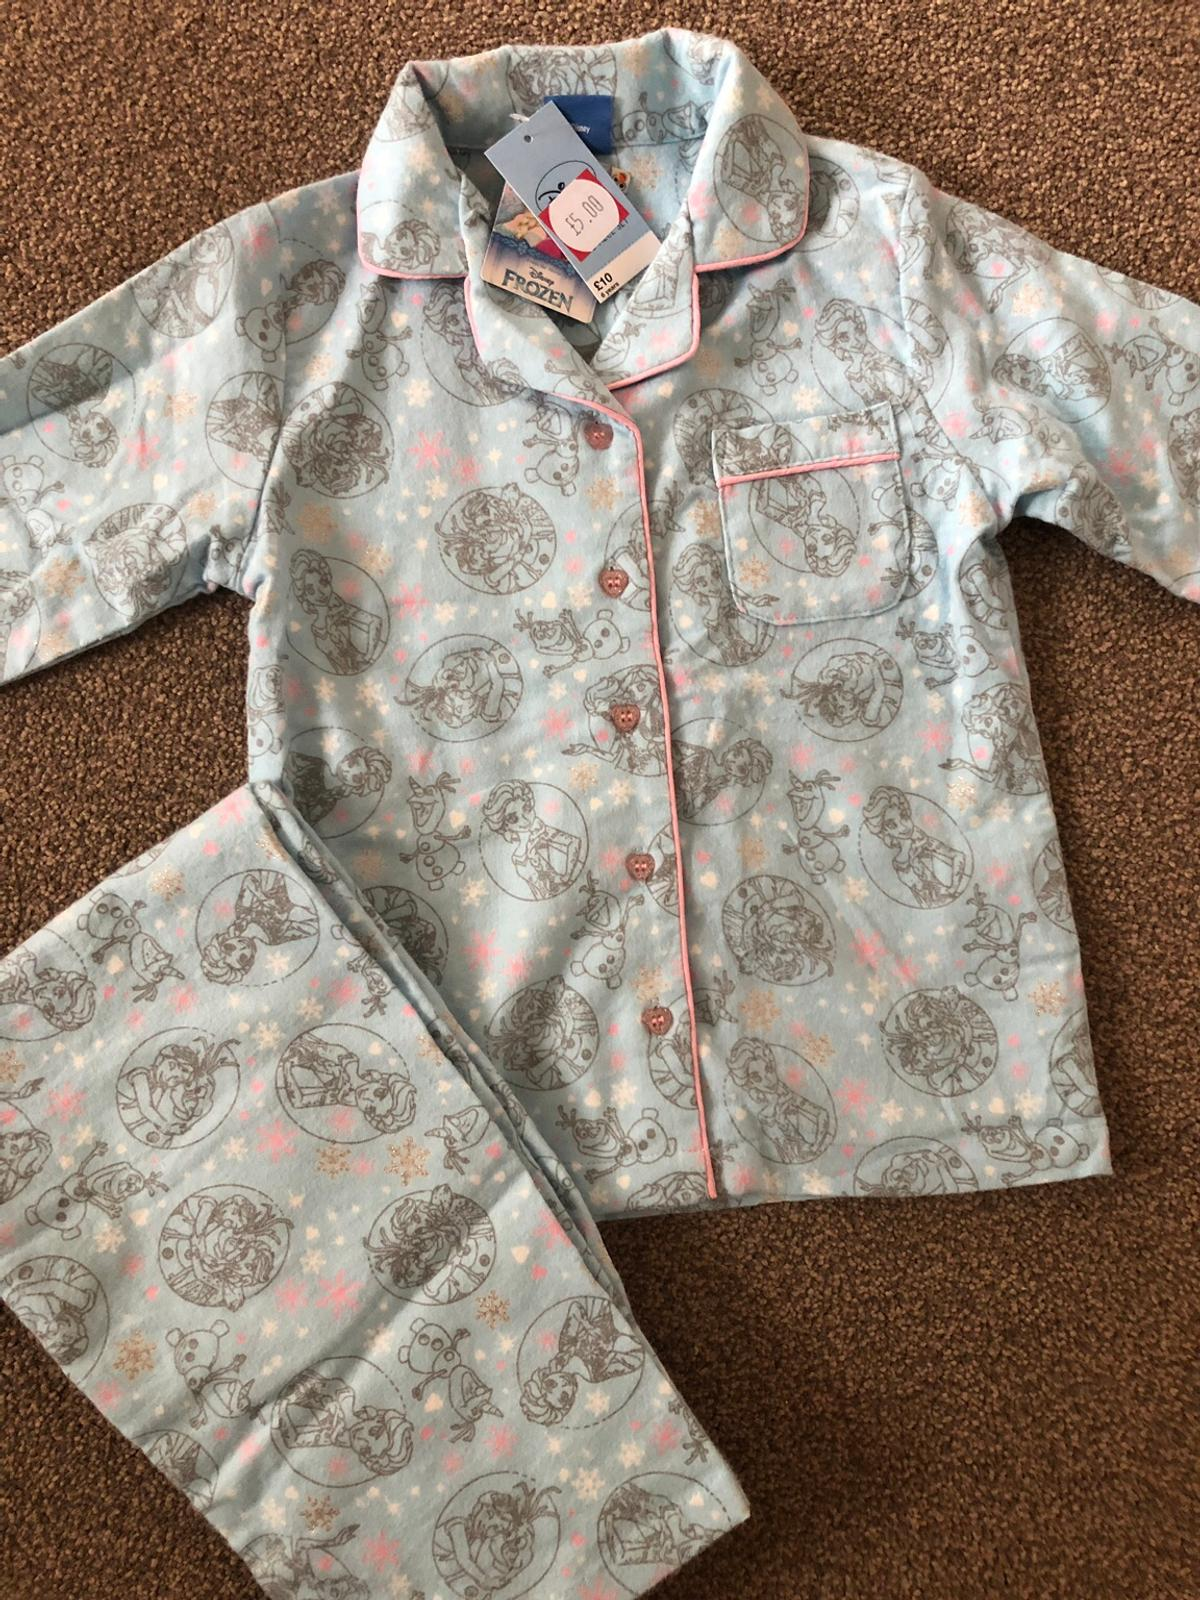 Brand new girls pj's 6 years old Brand new Originally £10, purchased for £5 in sale